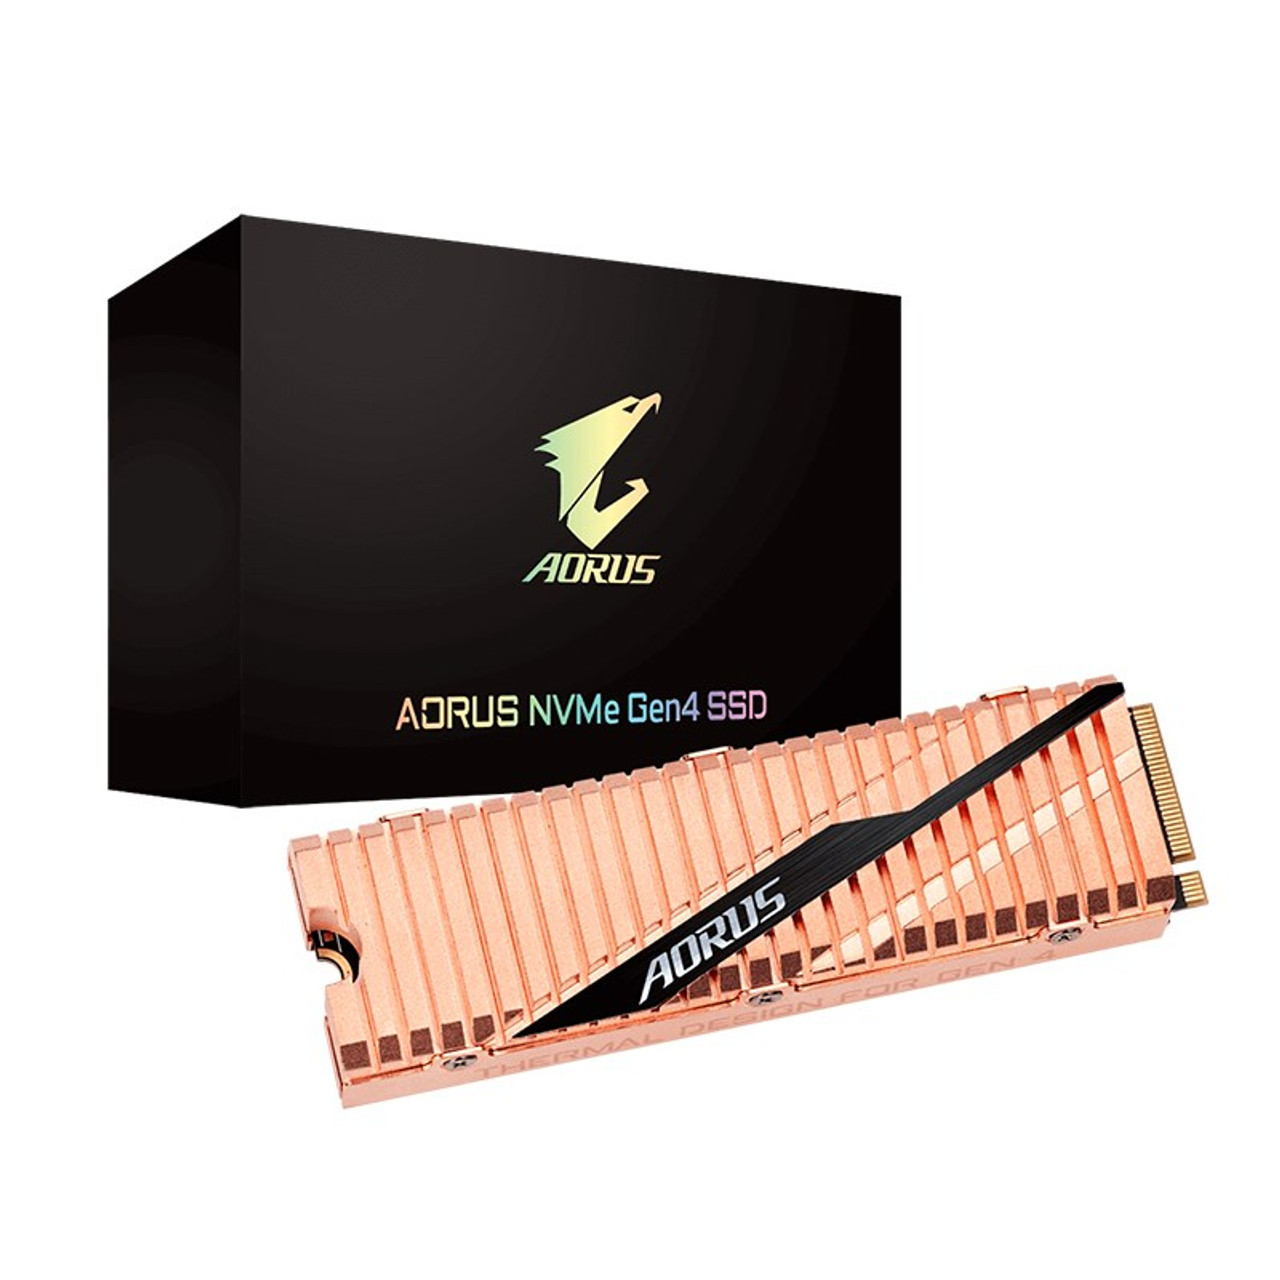 Product image for Gigabyte Aorus M.2 NVMe PCIe Gen4 SSD 1TB | CX Computer Superstore